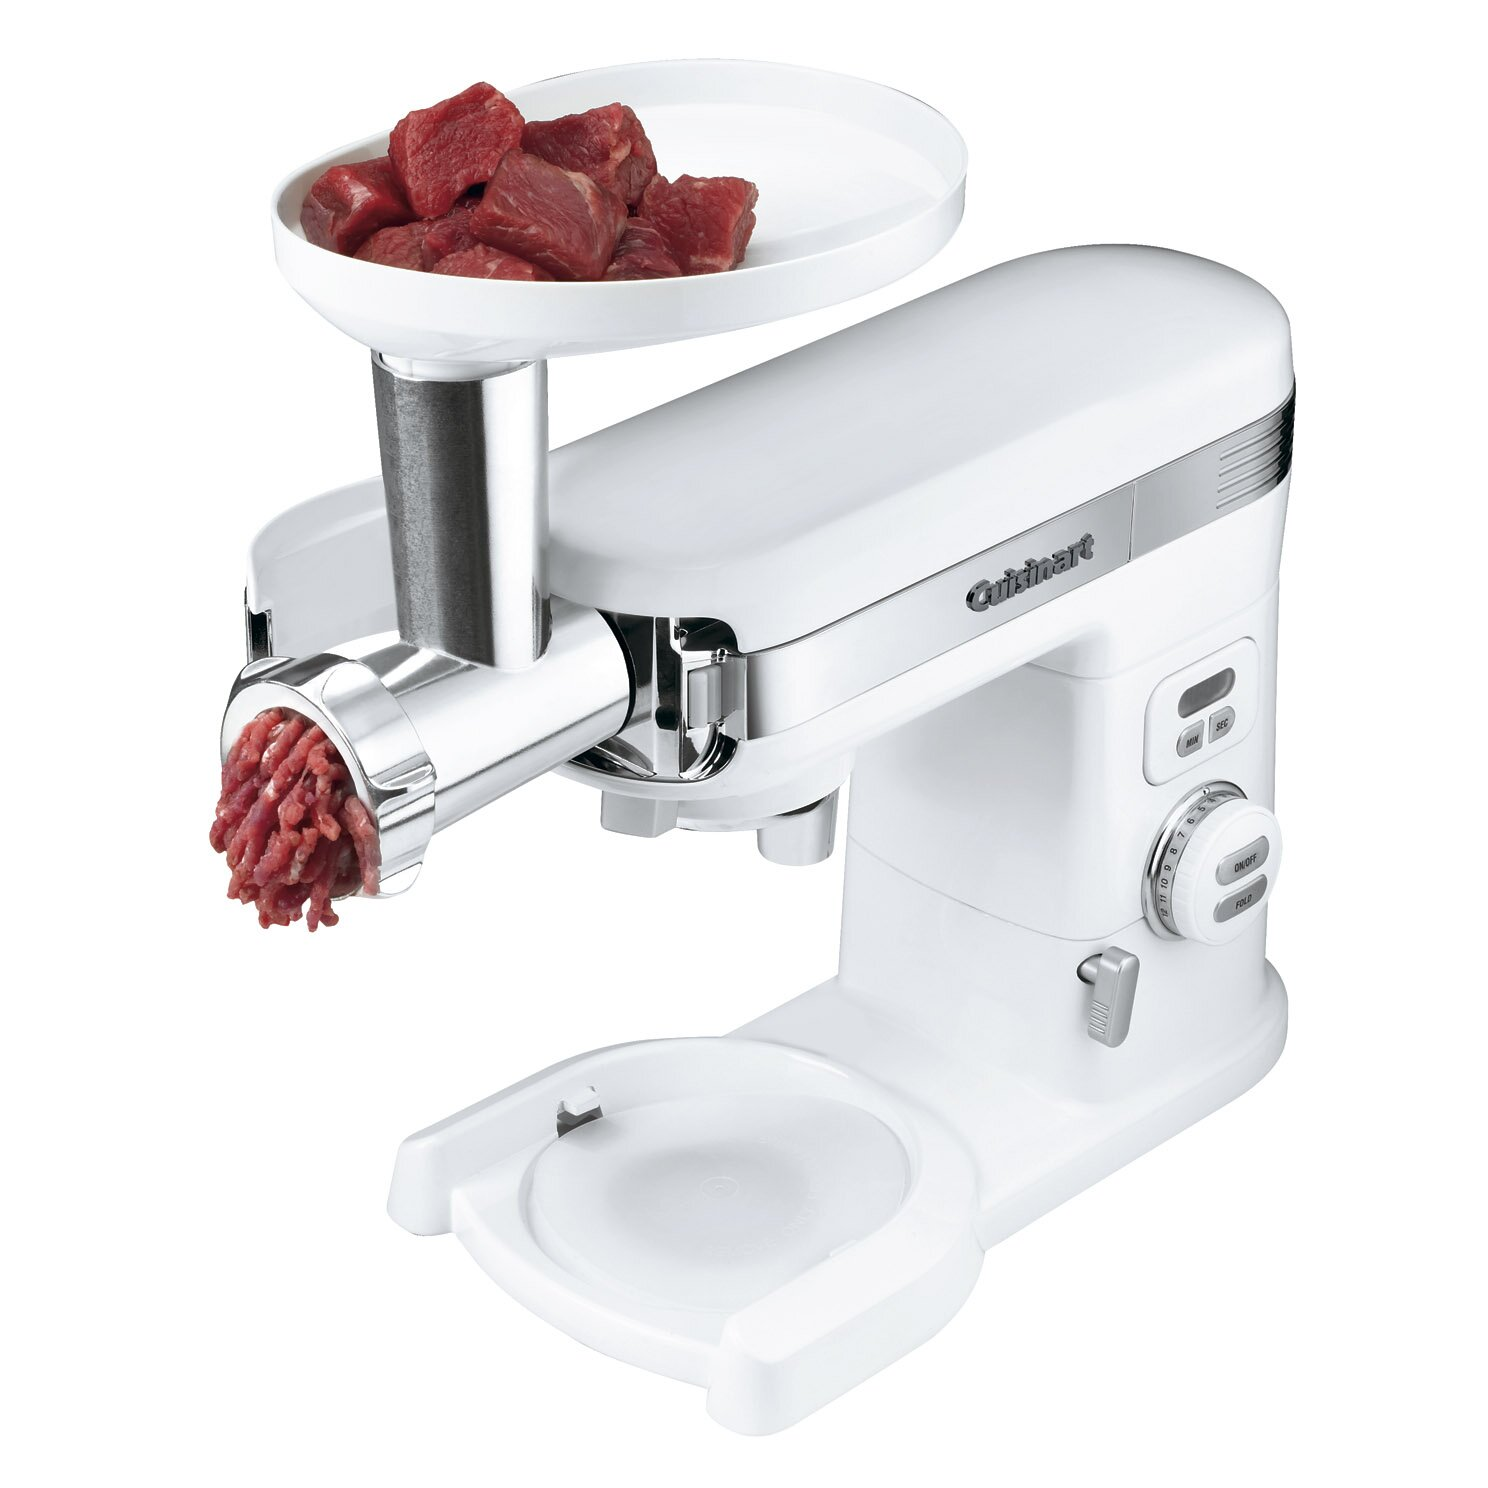 Cuisinart Meat Grinder Stand Mixer Attachment & Reviews ...